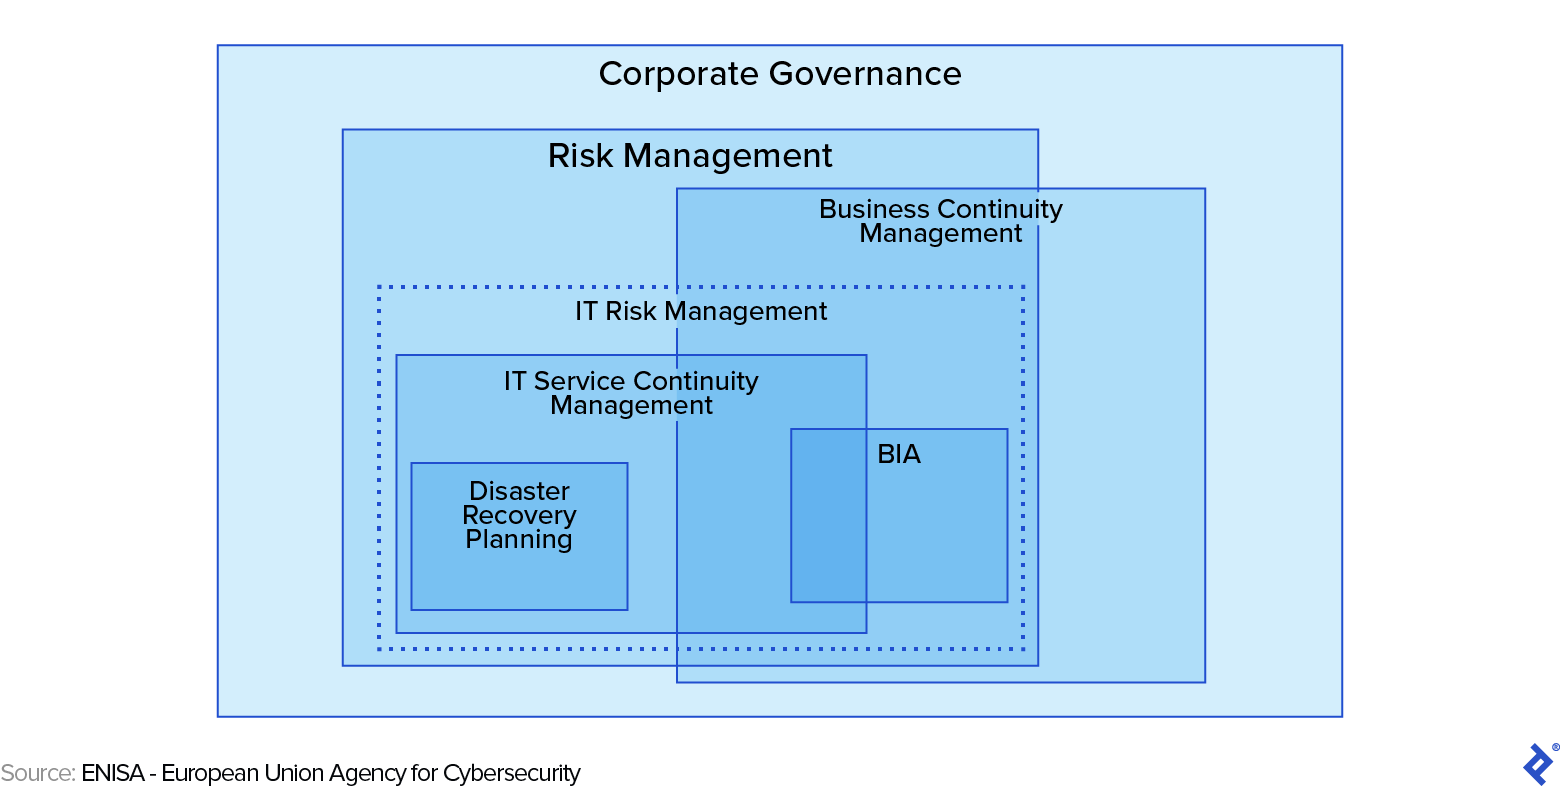 Business Continuity Management Within the Corporate Governance Framework